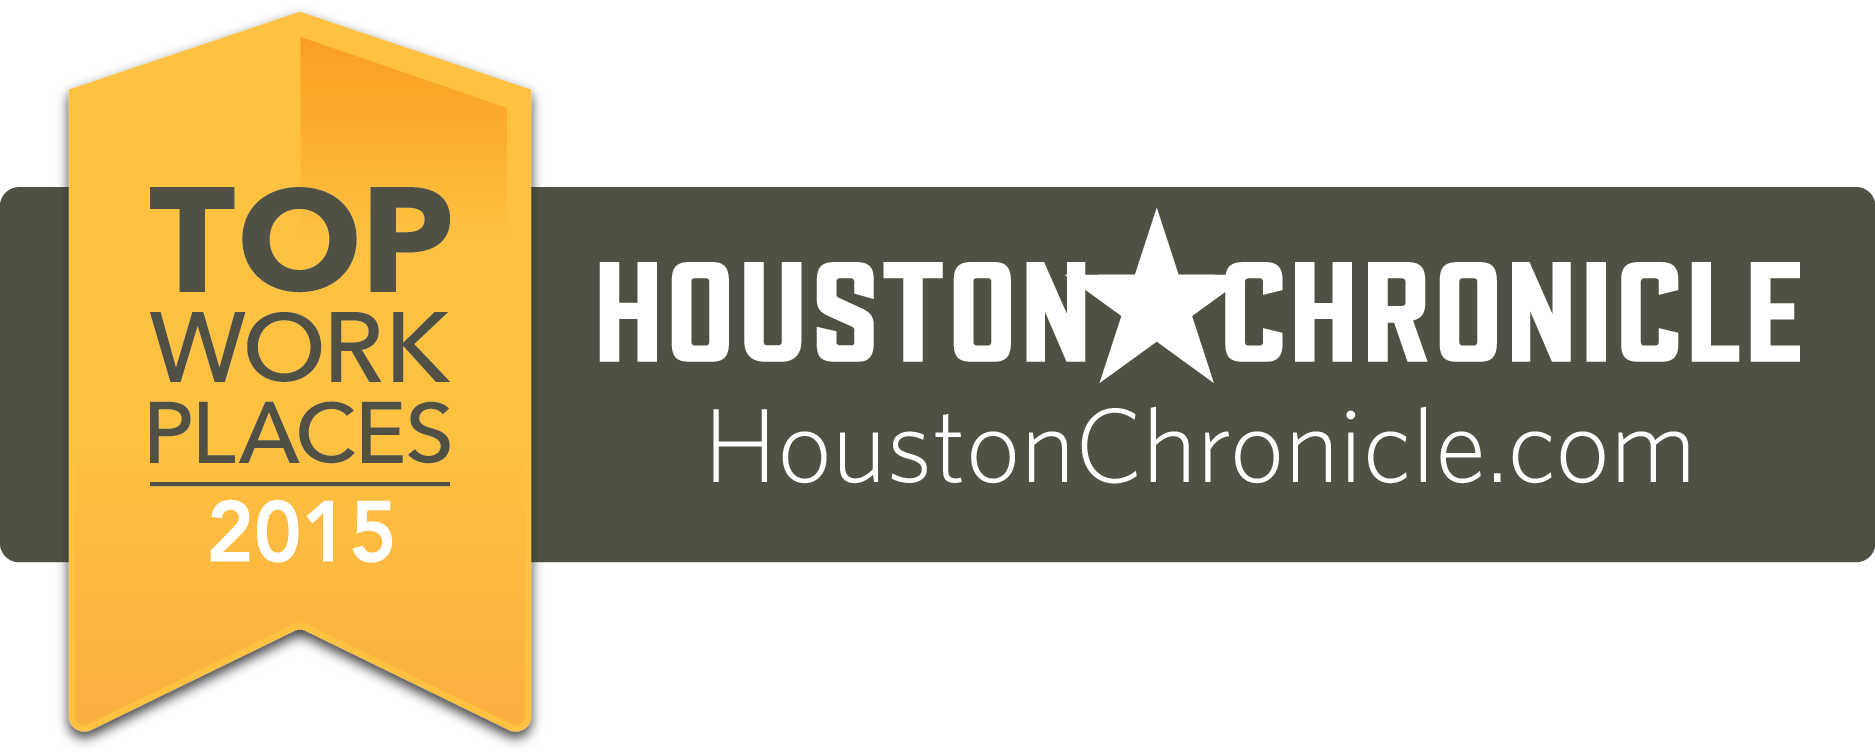 Houston Chronicle Top Workplaces 2015 logo